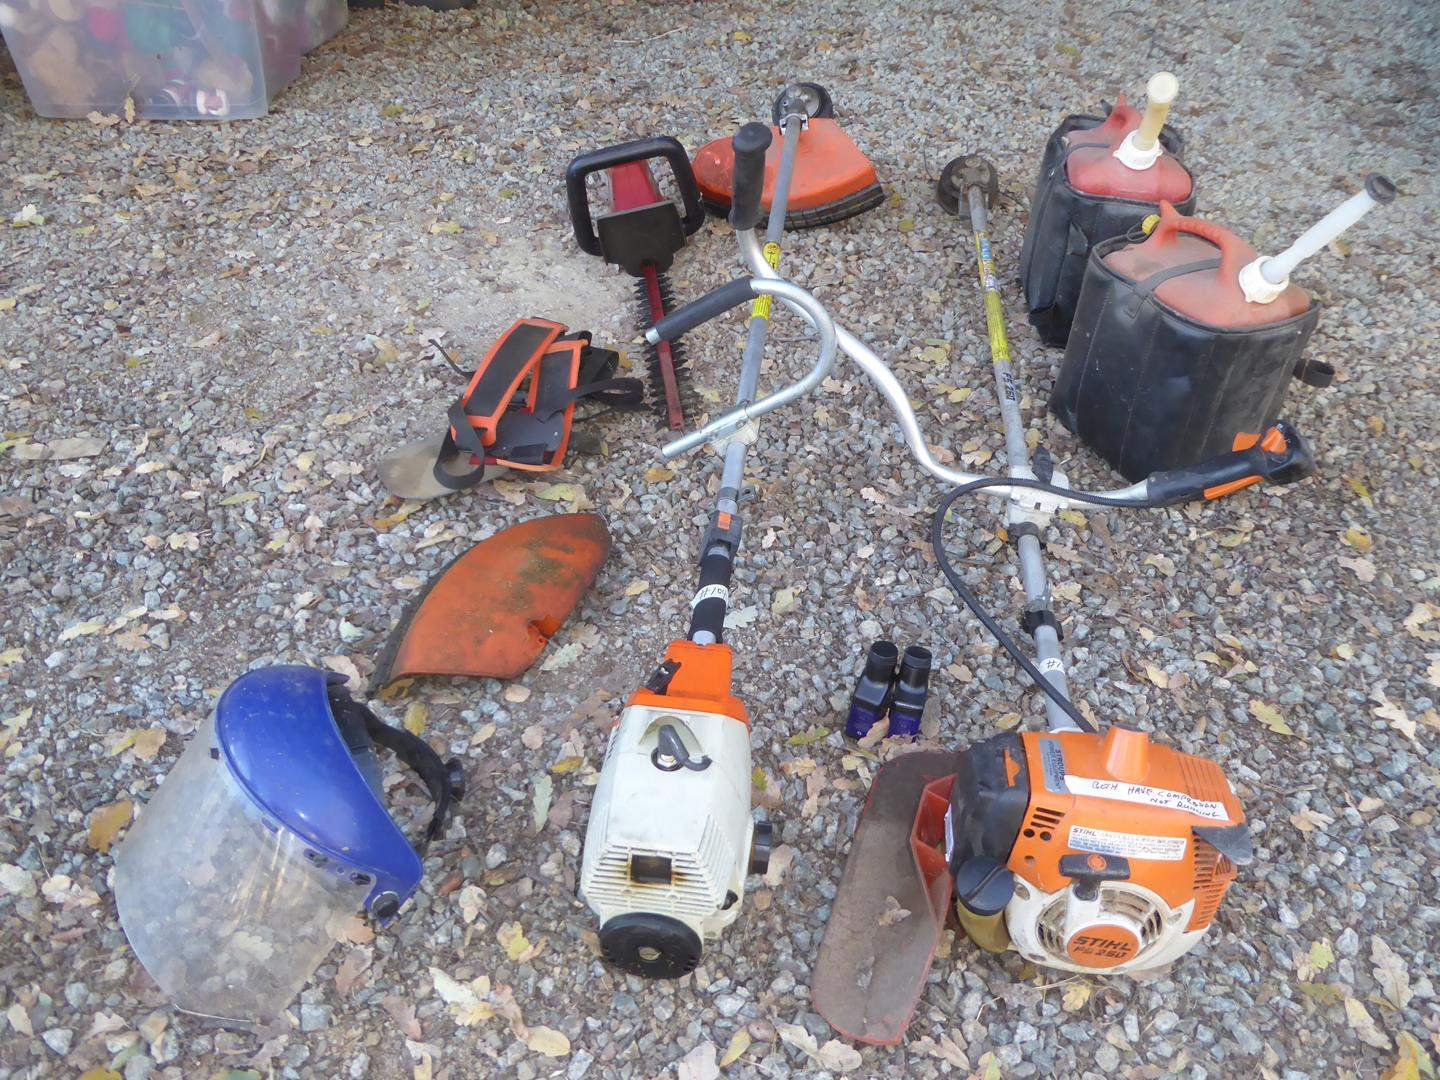 Lot # 104 - Two Weed Trimmers (Both Have Compression), Electric Hedge Trimmer (Works) & Gas Cans (main image)